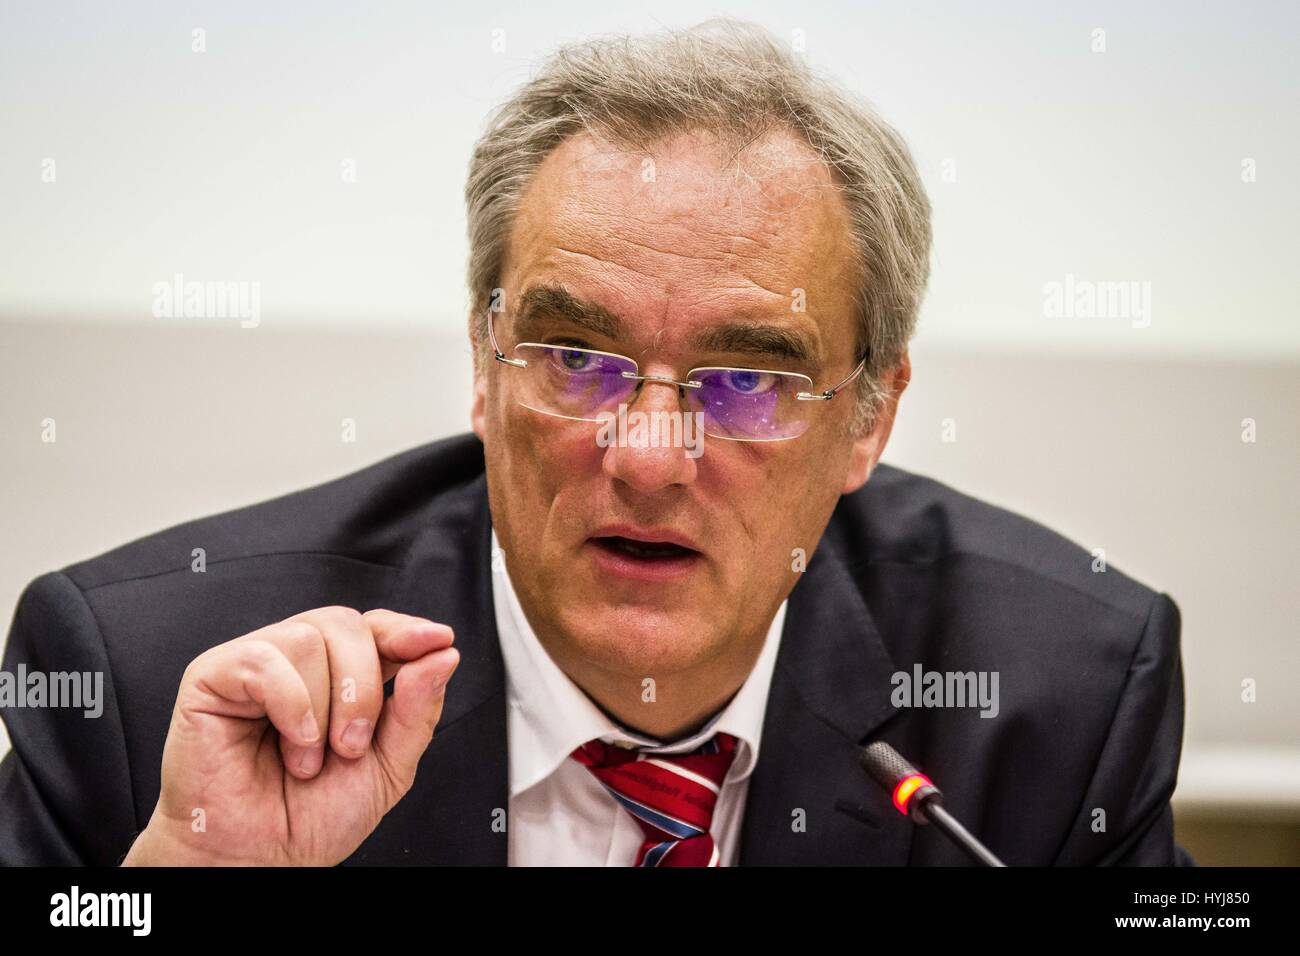 April 4, 2017 - Bavarian parliamentarian Florian Ritter (SPD) holds a conference on the ongoing NSU terror cell - Stock Image